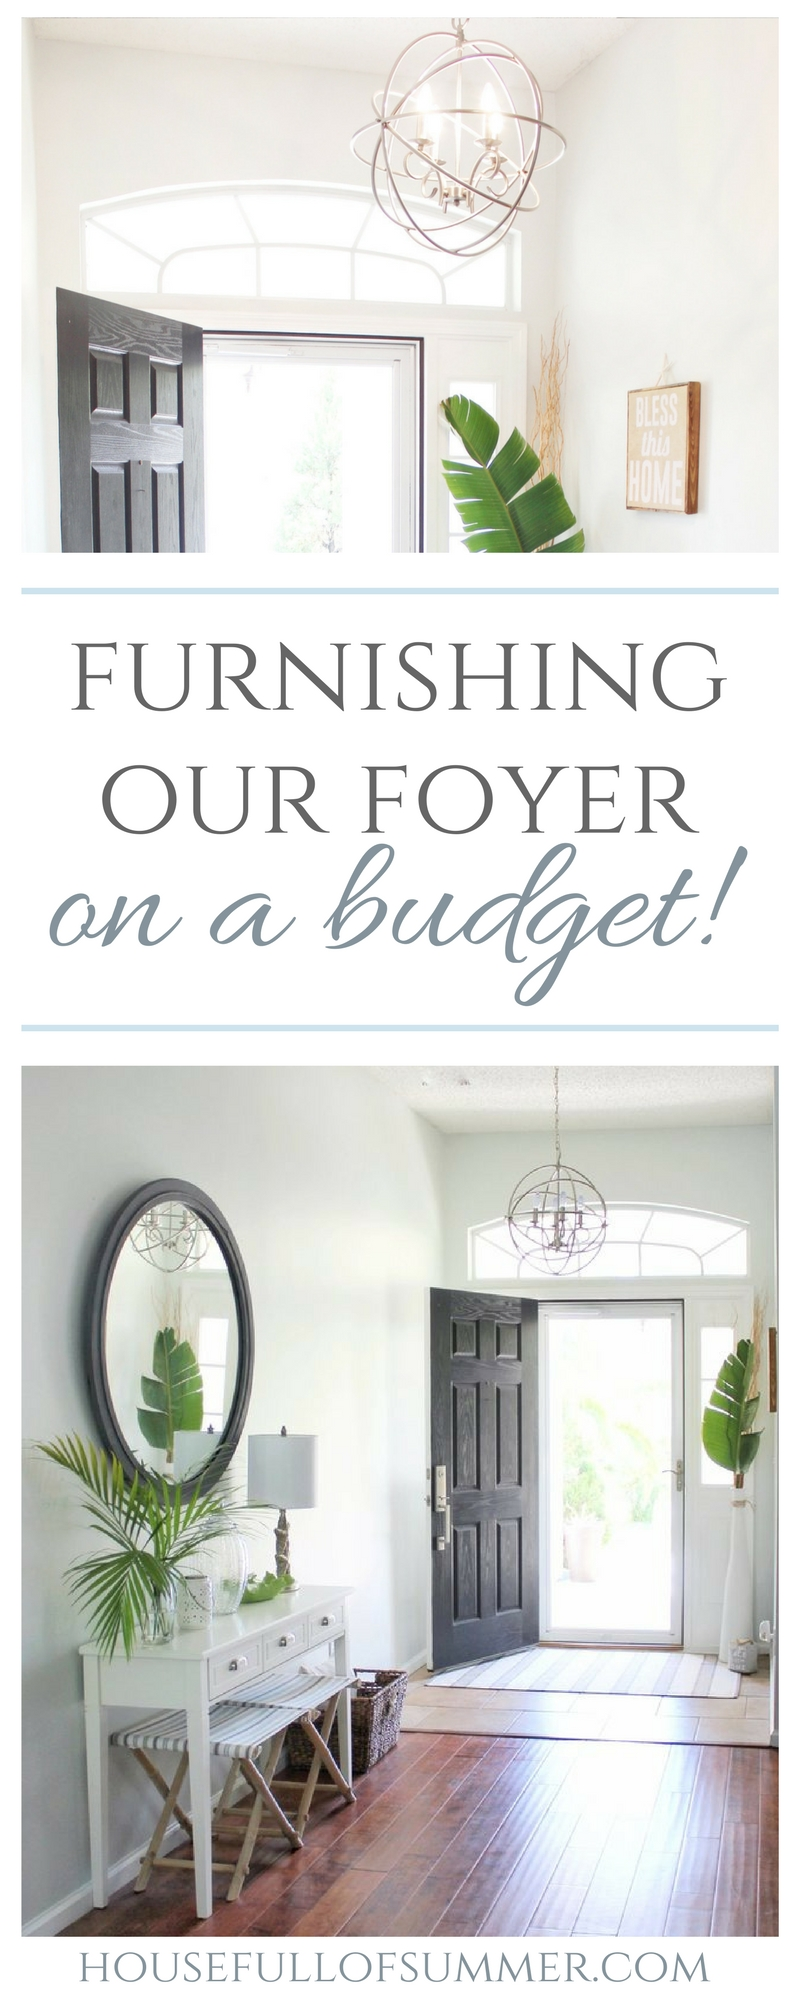 House Full of Summer Blog - before and after foyer, foyer makeover, decorating on a budget, furnishing our foyer, tropical decor, entryway lighting, orb chandelier, coastal decor